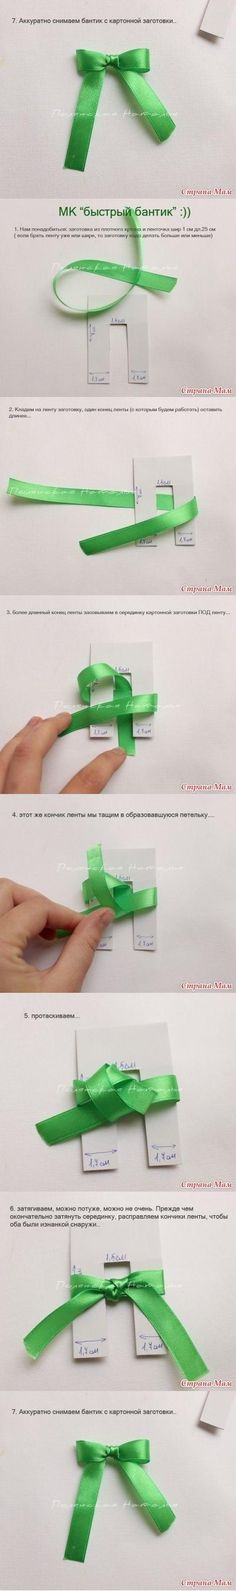 DIY Easy Ribbon Bow DIY Projects